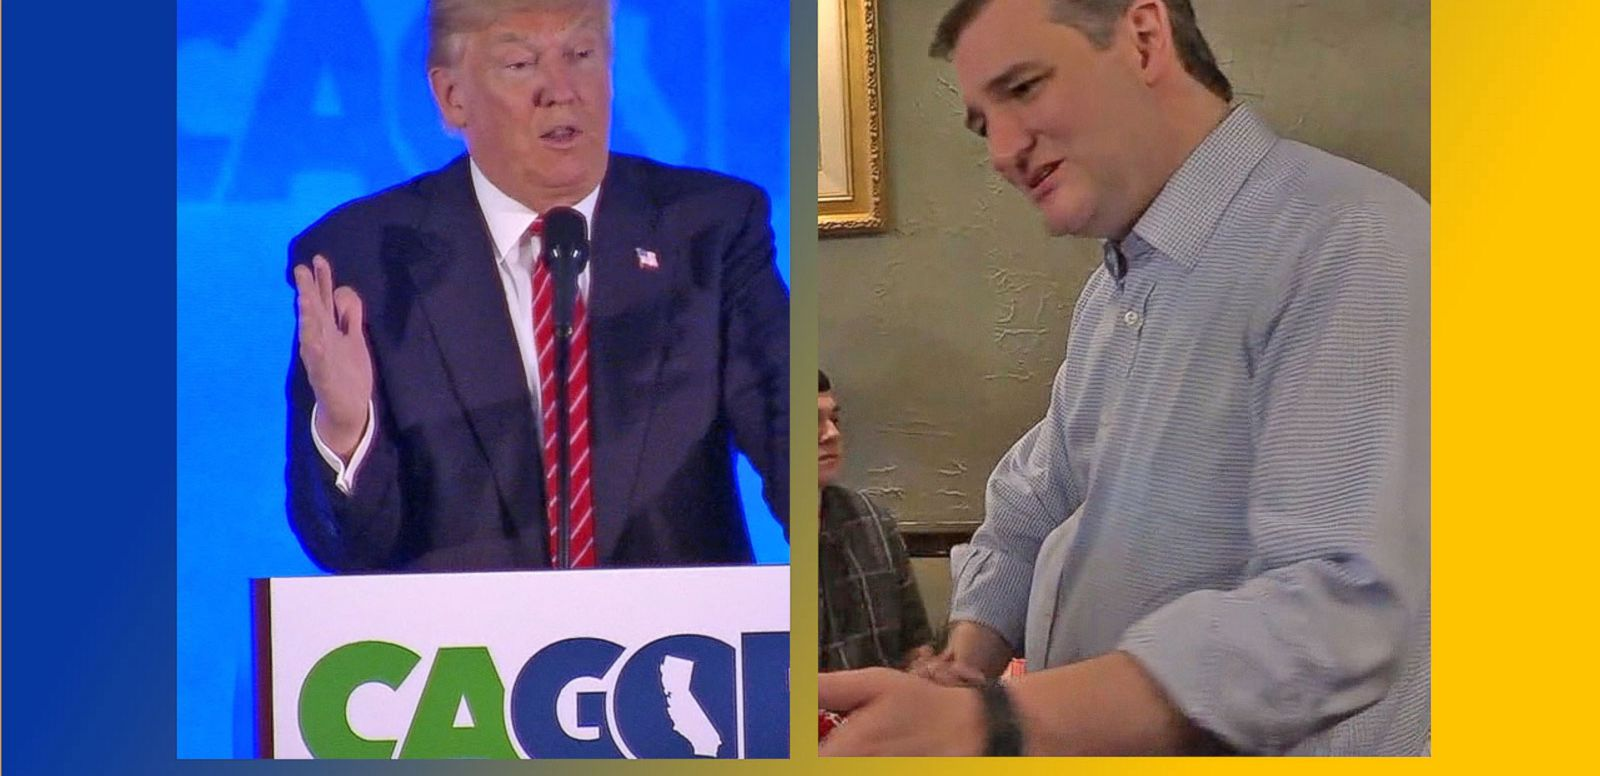 VIDEO: Presidential Candidates Campaign for Indiana Primary Vote